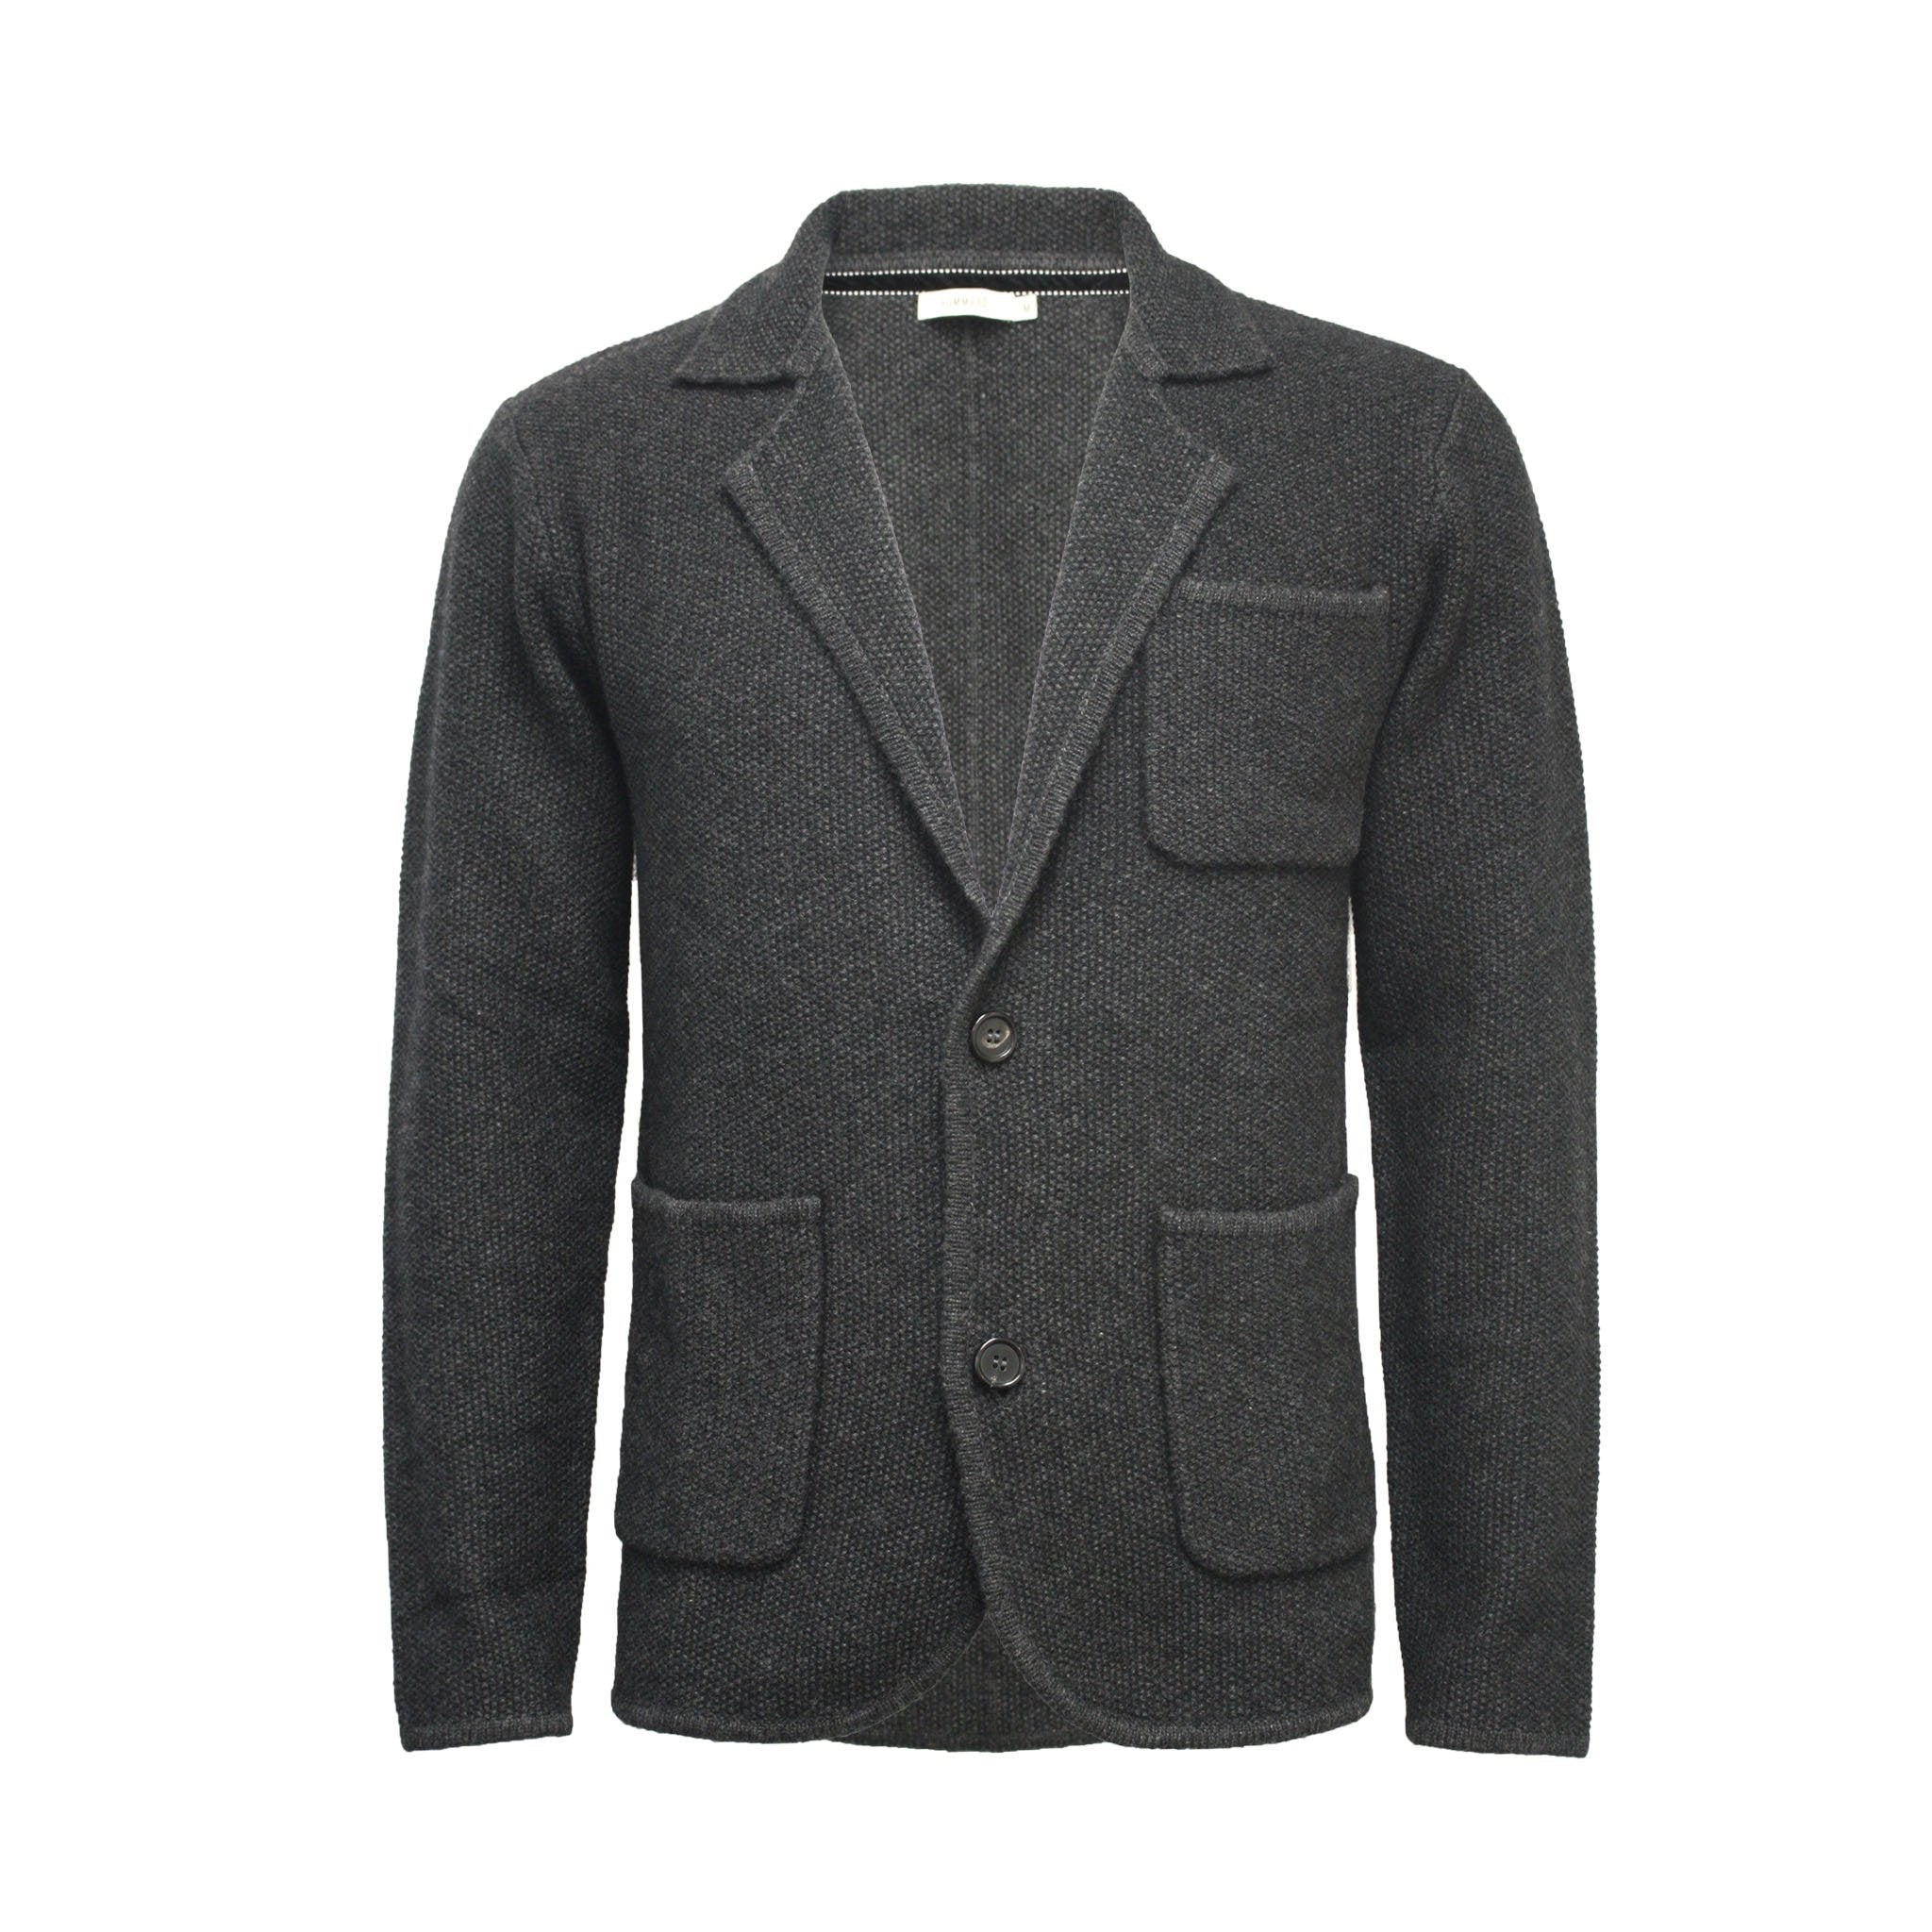 Men´s Knitted Seed Stitch Jacket Tura - Hommard